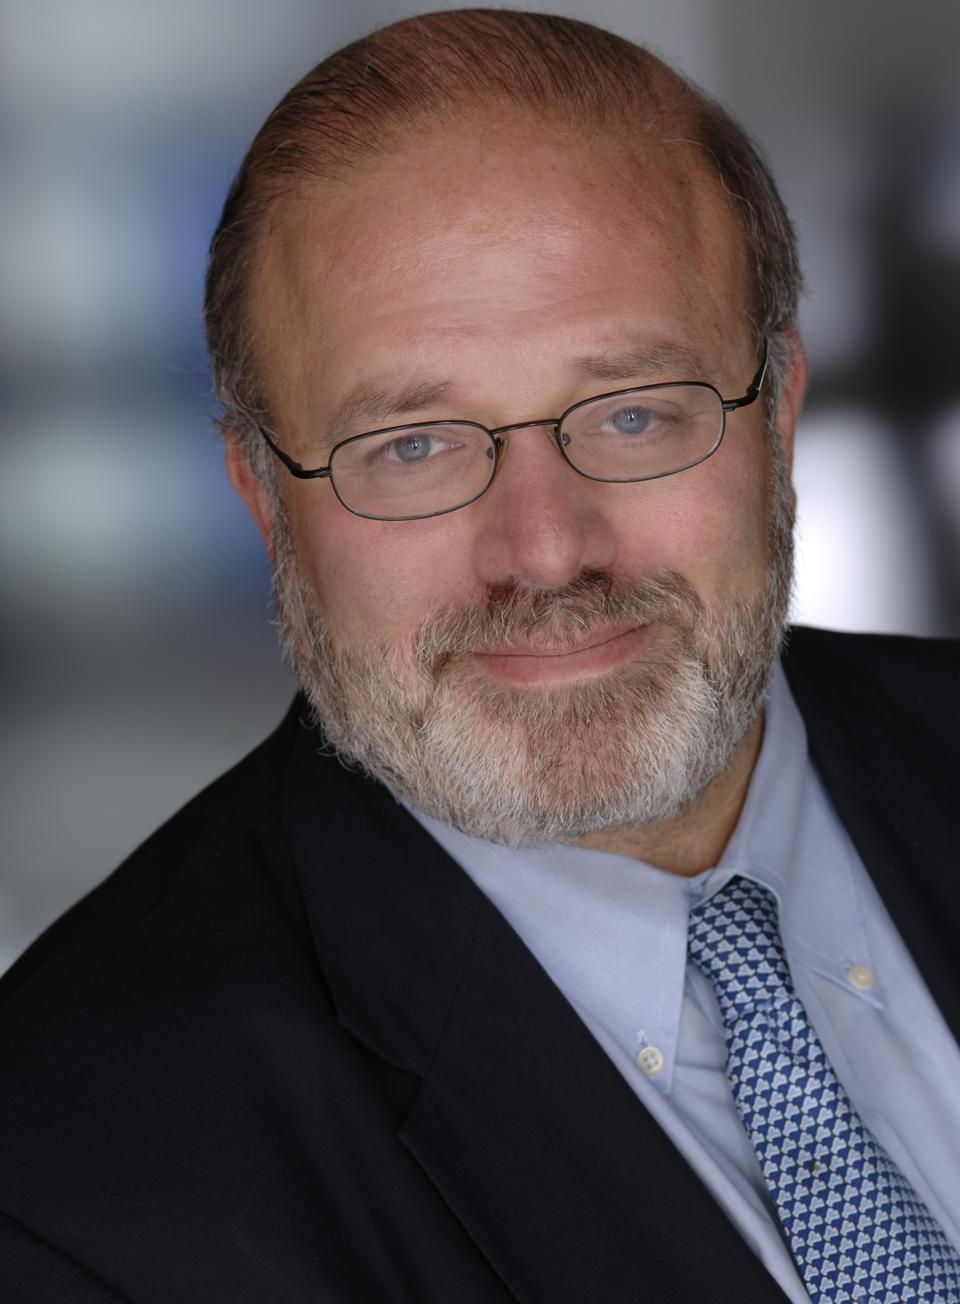 A man with a beard in glasses, a dark jacket and a shirt and blue tie.